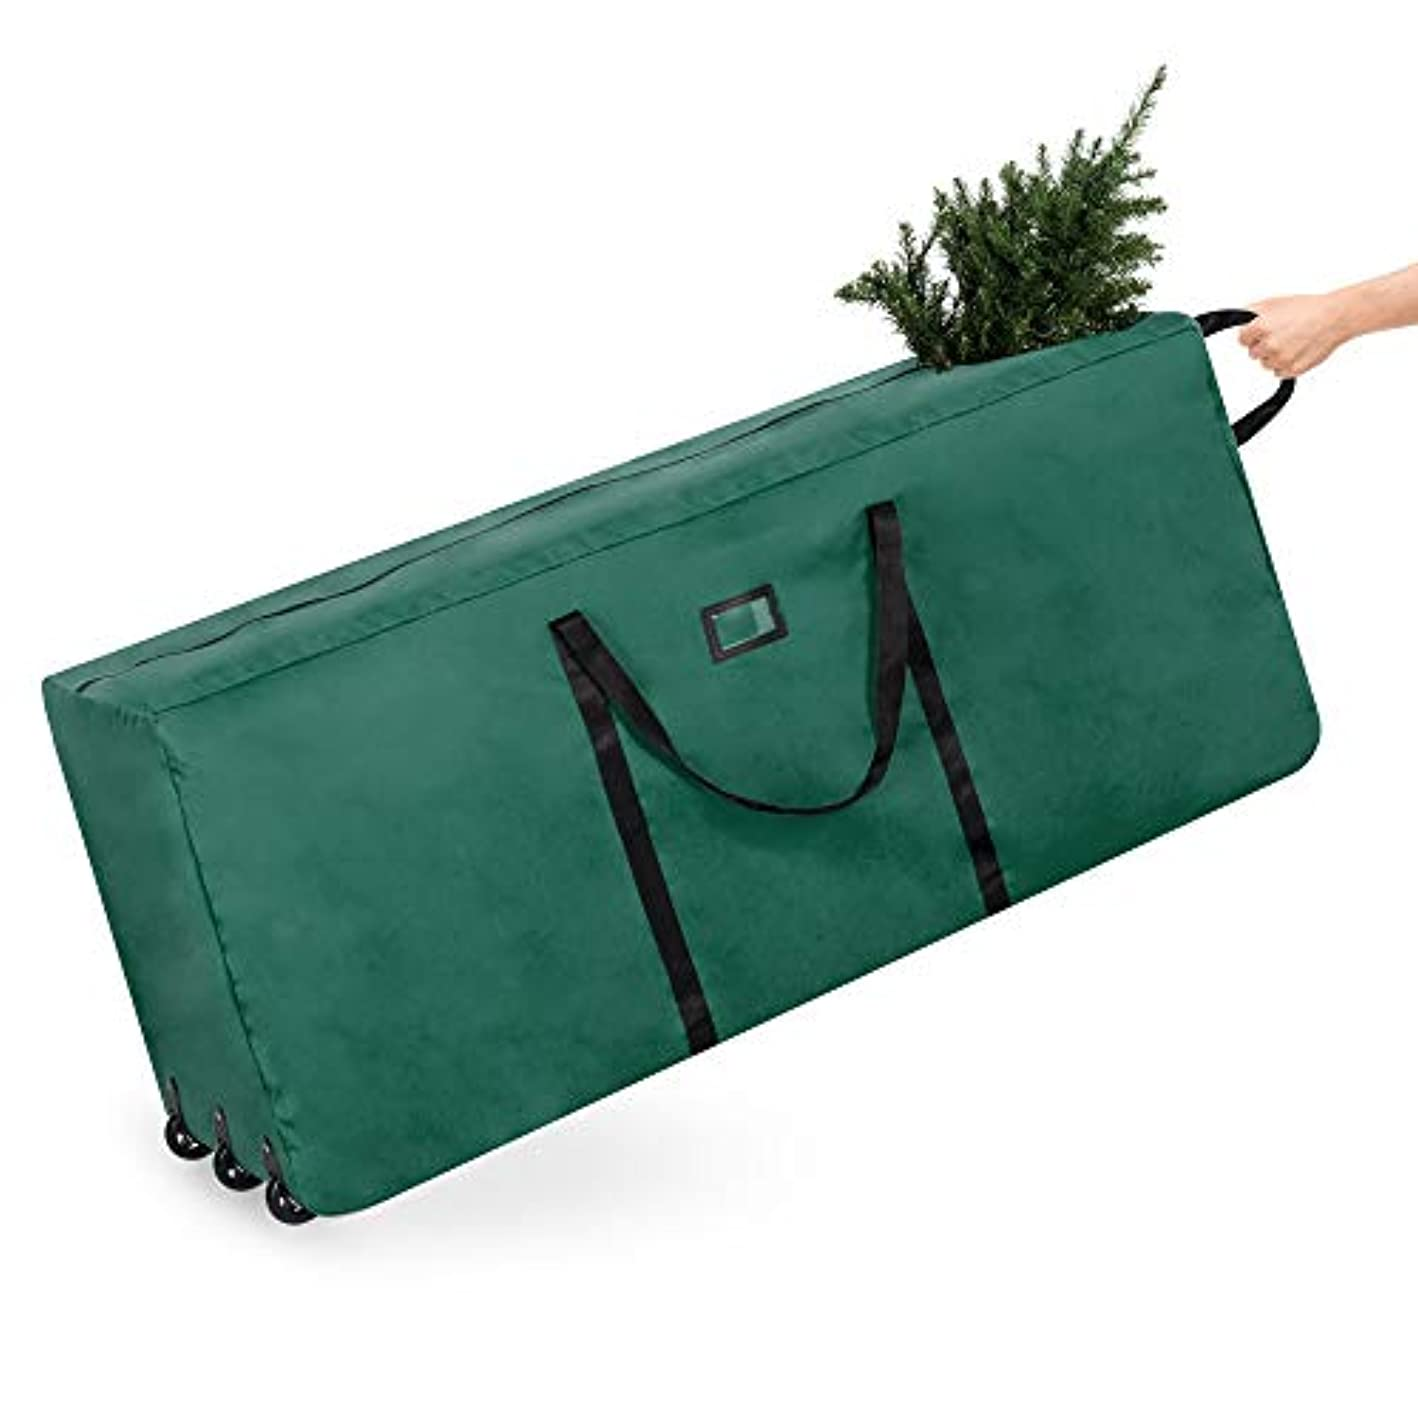 Best Choice Products Rolling Duffel Holiday Decoration Storage Bag for 9ft Christmas Tree w/Wheels, Handle - Green